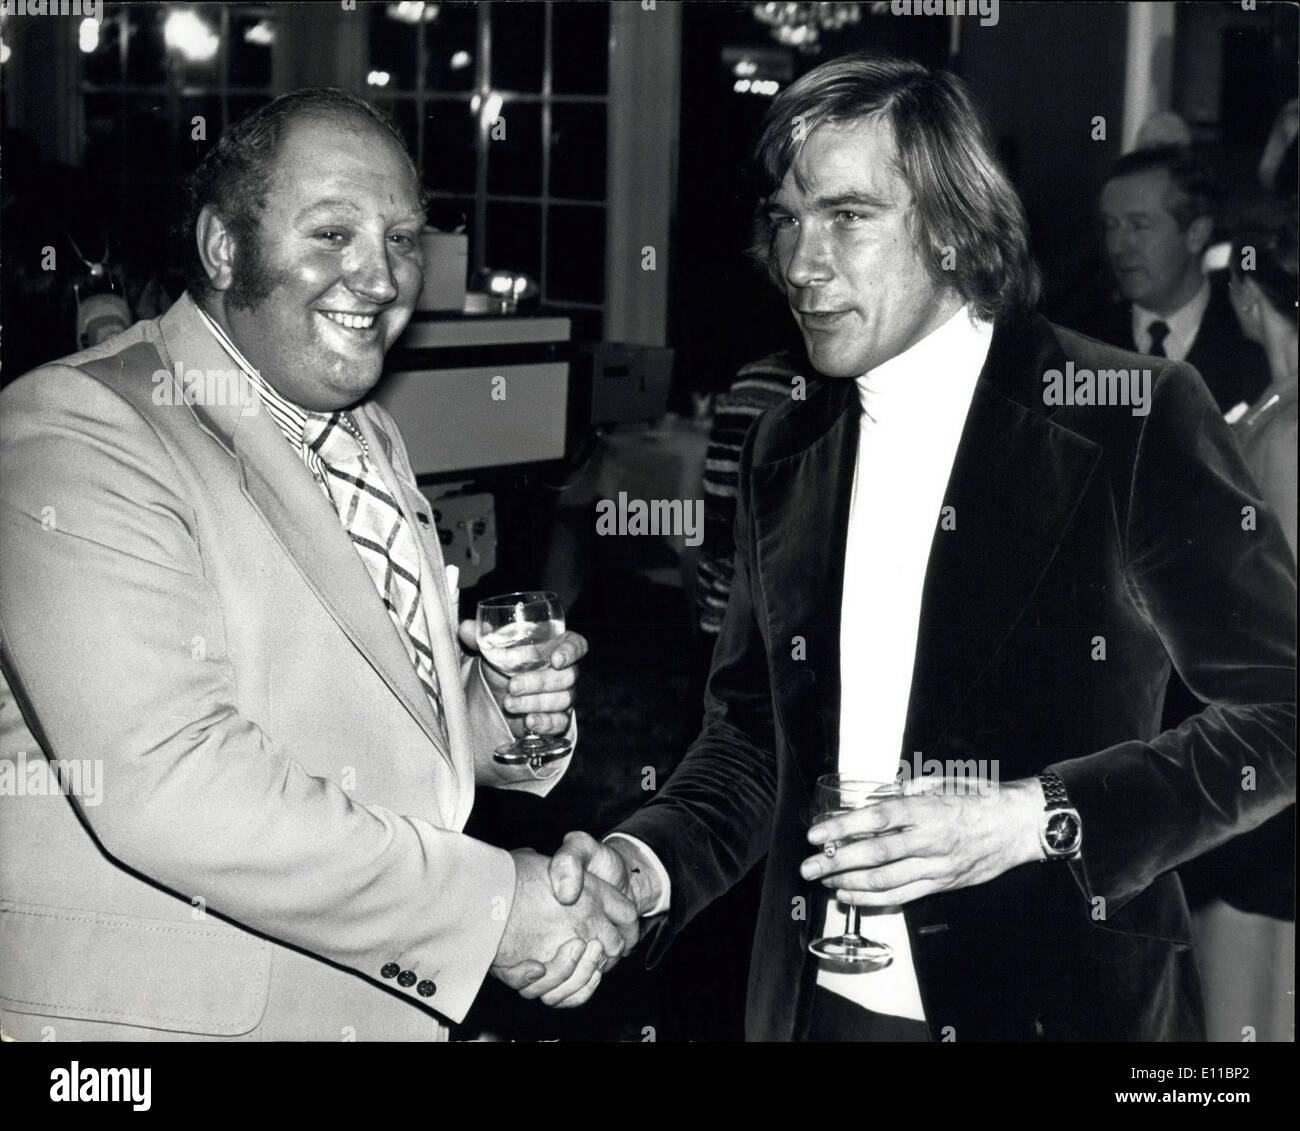 Dec. 06, 1976 - James Hunt and Gerry Marshall are still good friends: World Champion racing driver, James Hunt was involved in an incident with saloon car racing driver Gerry Marshall on Friday last at the British racing Driver's Club ball at London's Dorchester Hotel The incident arose when Gerry Marshall went to introduce a friend to James Hunt on the next table. As Gerry turned round to James the glass of gin and tonic that Gerry was holding was tipped into his face, the glass cutting his forehead. James Hunt has apologized to Gerry Marshall who was ready to forgive and forget - Stock Image